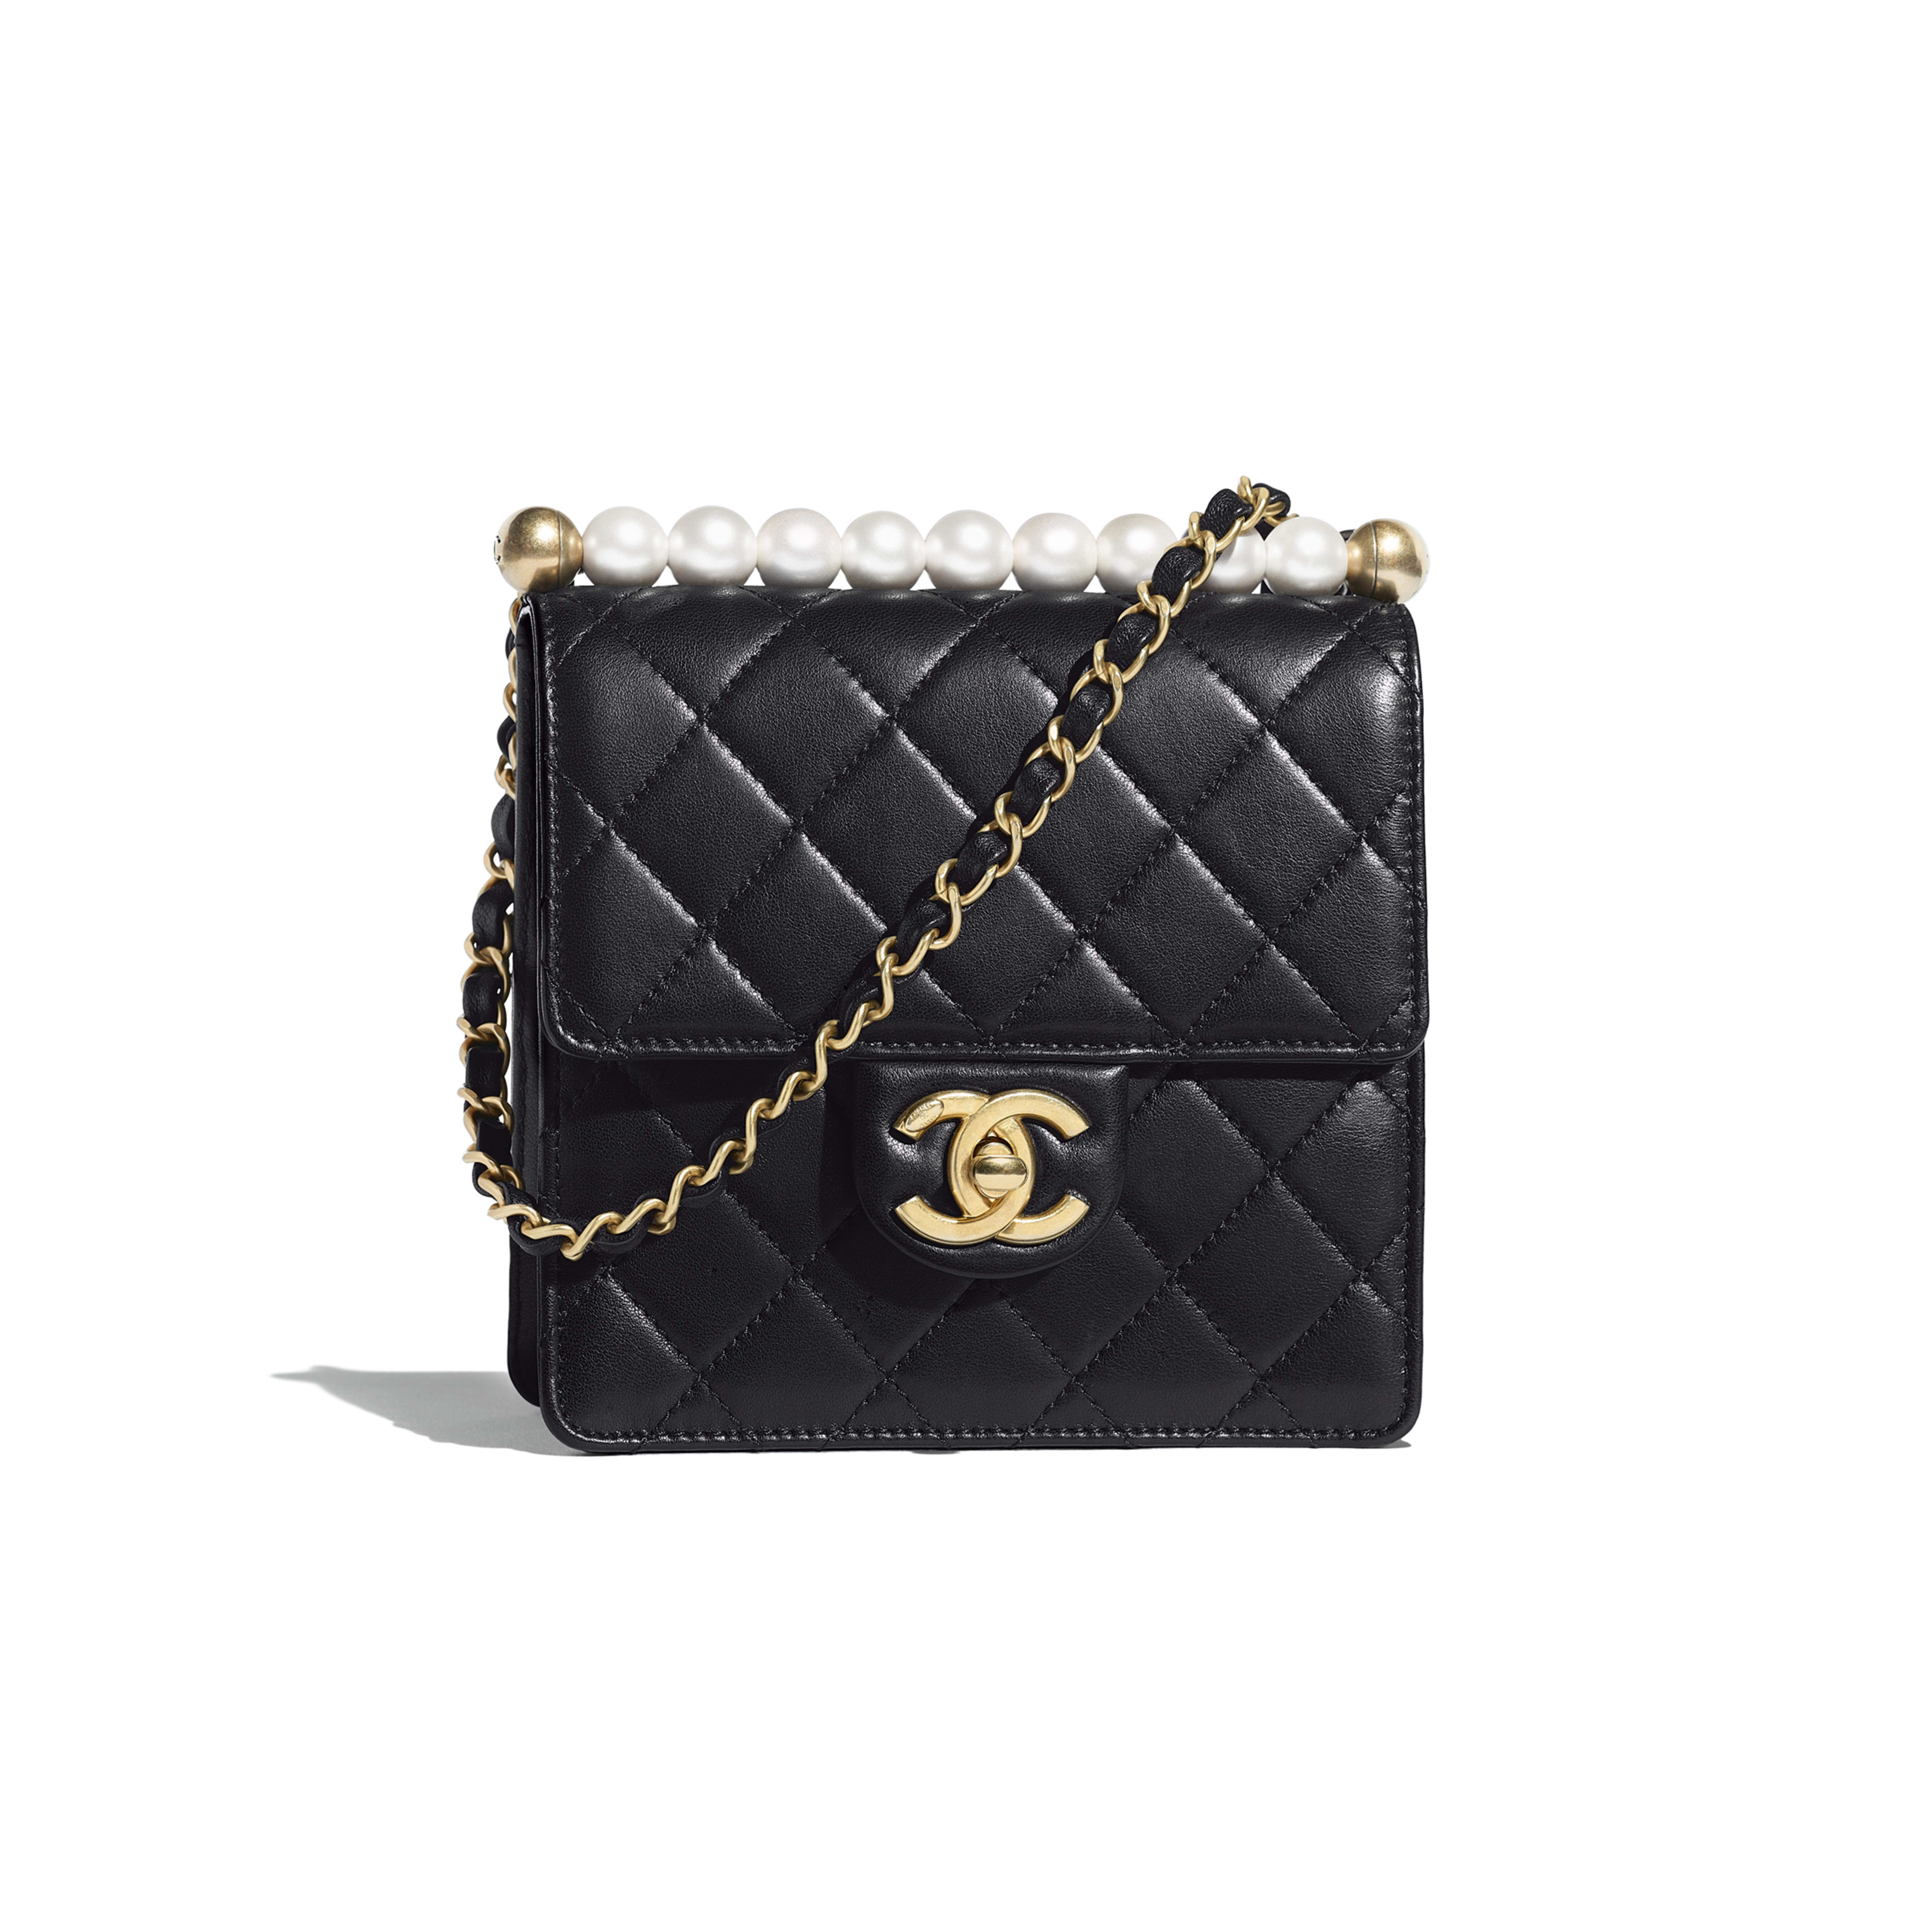 Flap Bag - Black - Lambskin, Imitation Pearls & Gold-Tone Metal - Default view - see full sized version